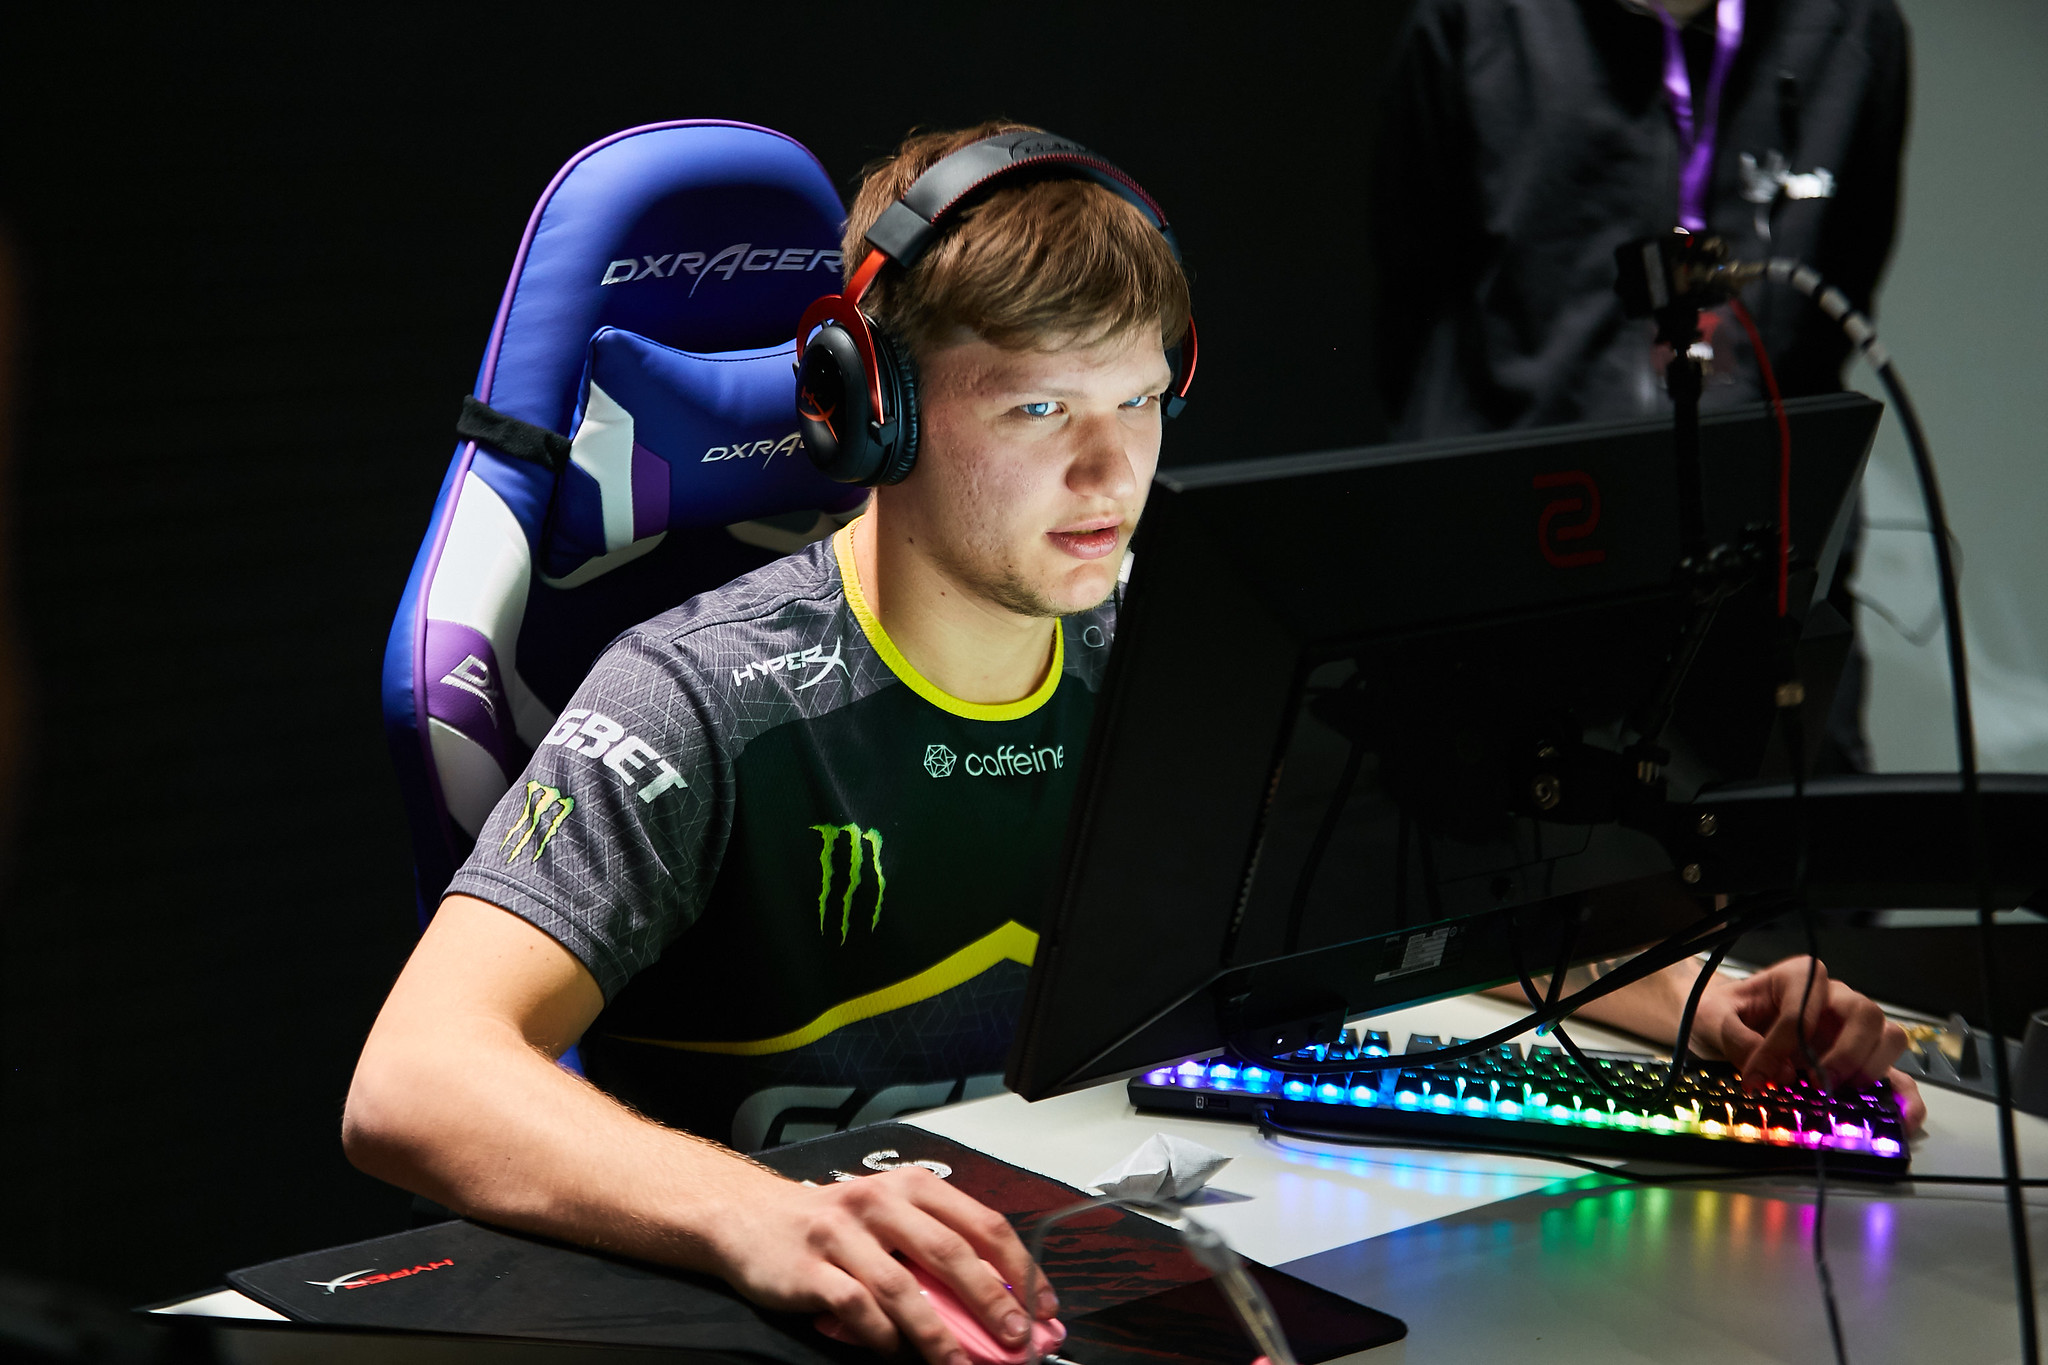 S1mple's settings, crosshair, and viewmodel for CS:GO | Dot Esports